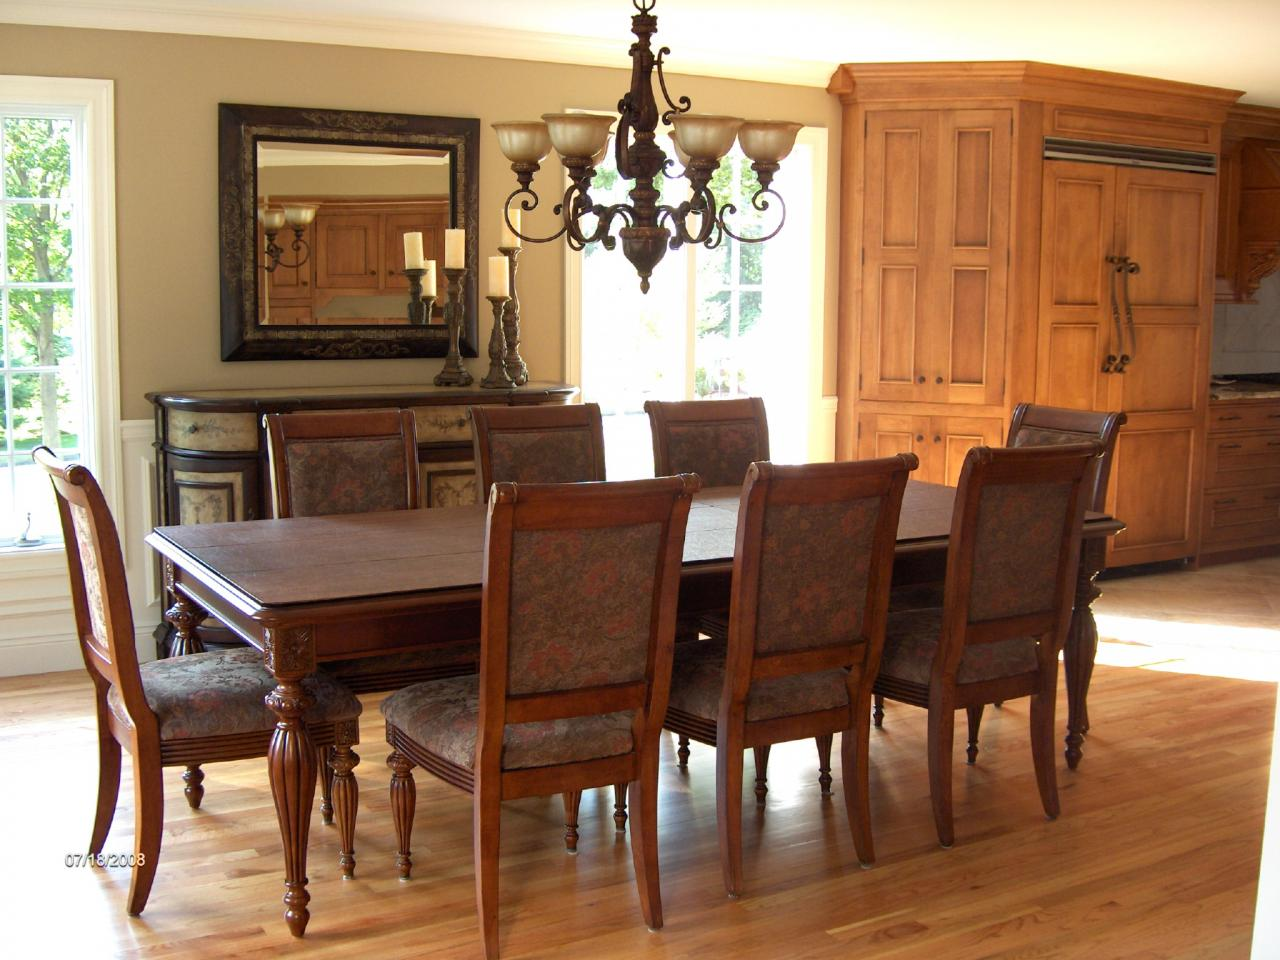 Dining Room Photos dining room suites glenns furniture. the prandelli 9 piece dining